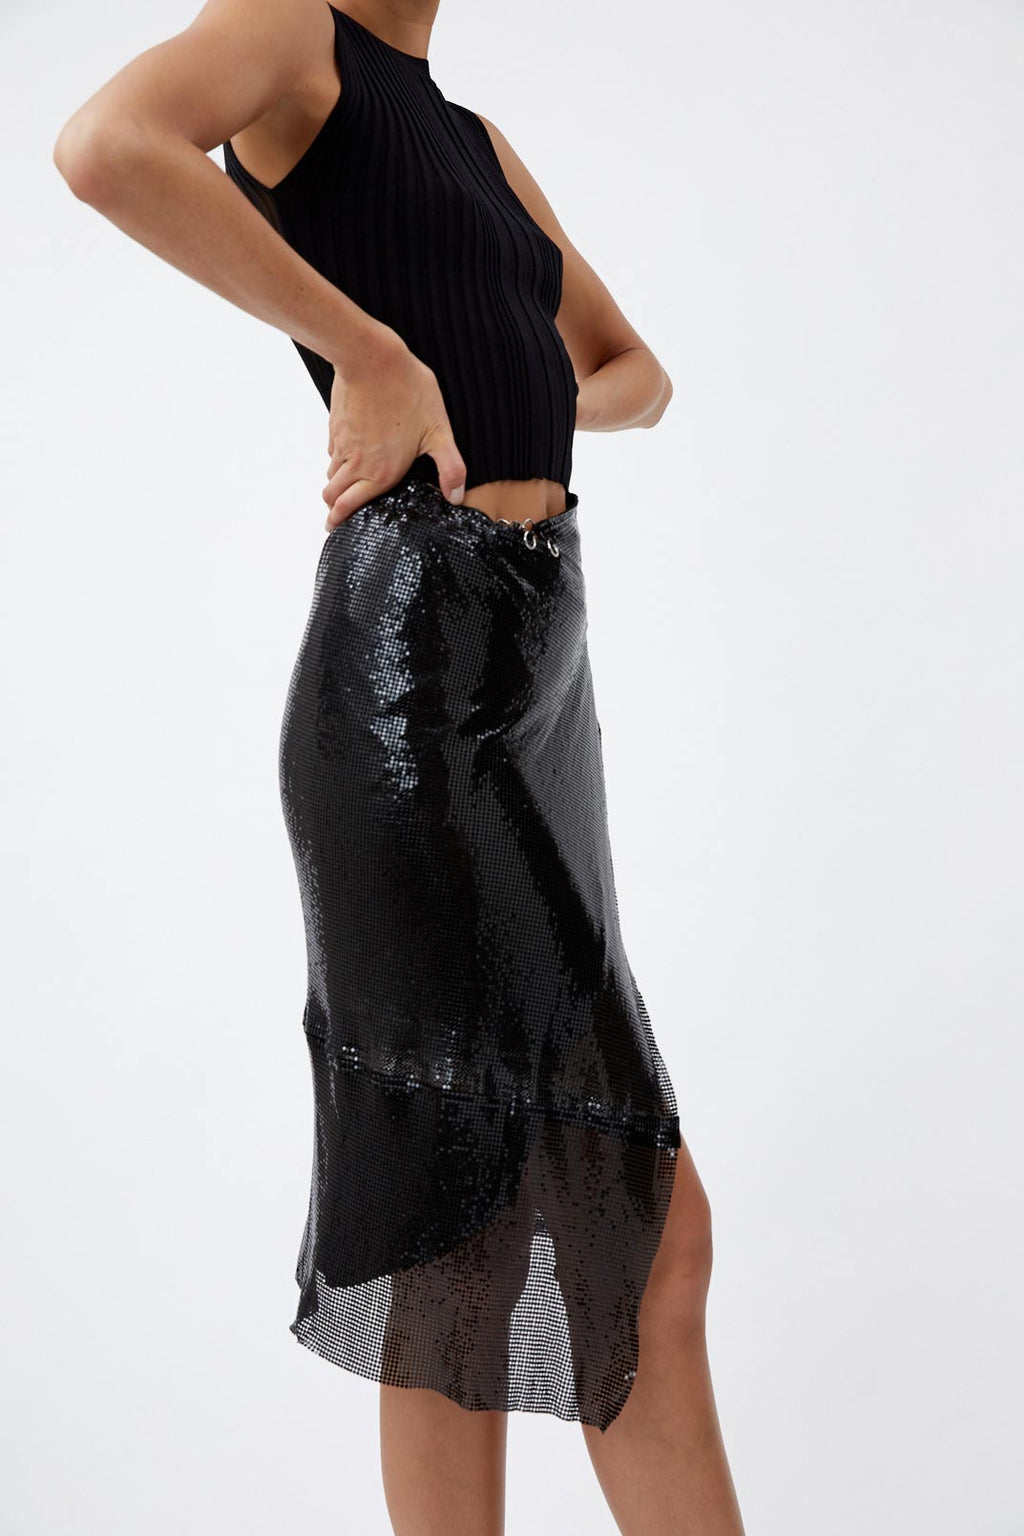 Syphera Black Skirt